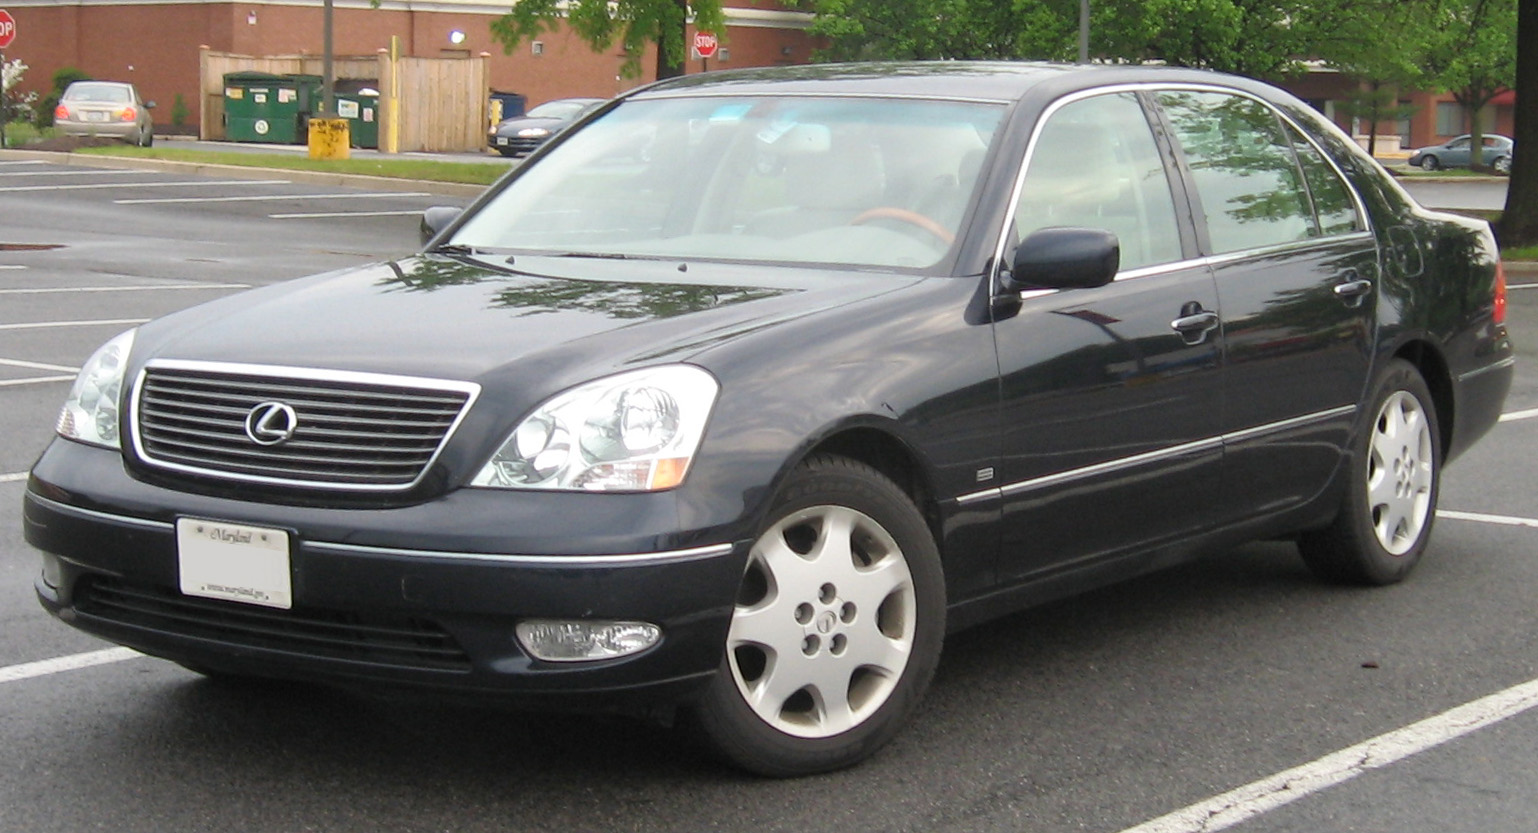 file:lexus ls 430 black onyx - wikimedia commons